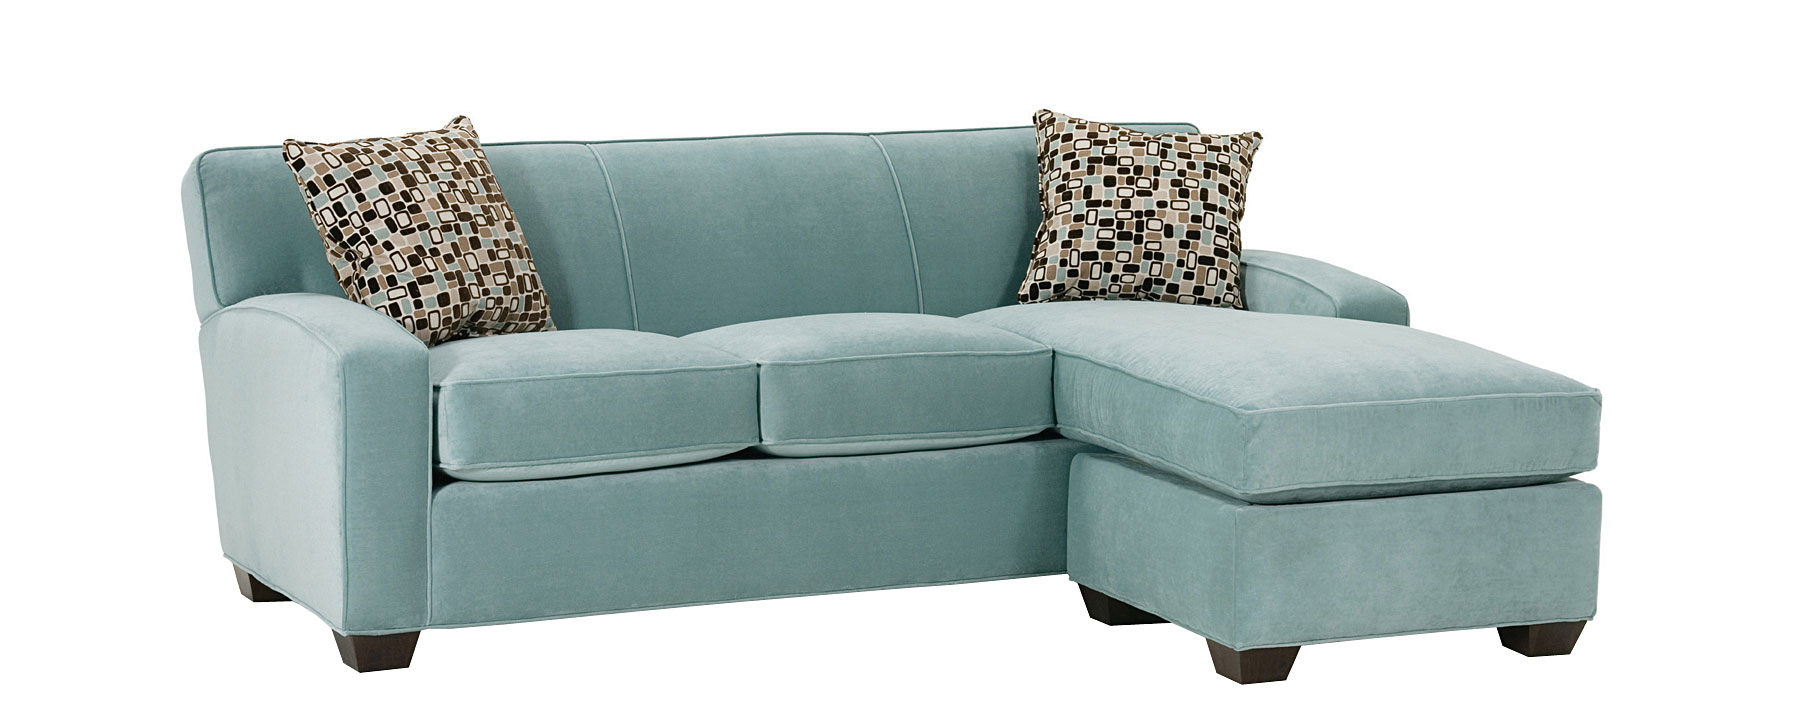 Small contemporary sectional sofa couch with chaise club for Apartment size sectional sofa with chaise